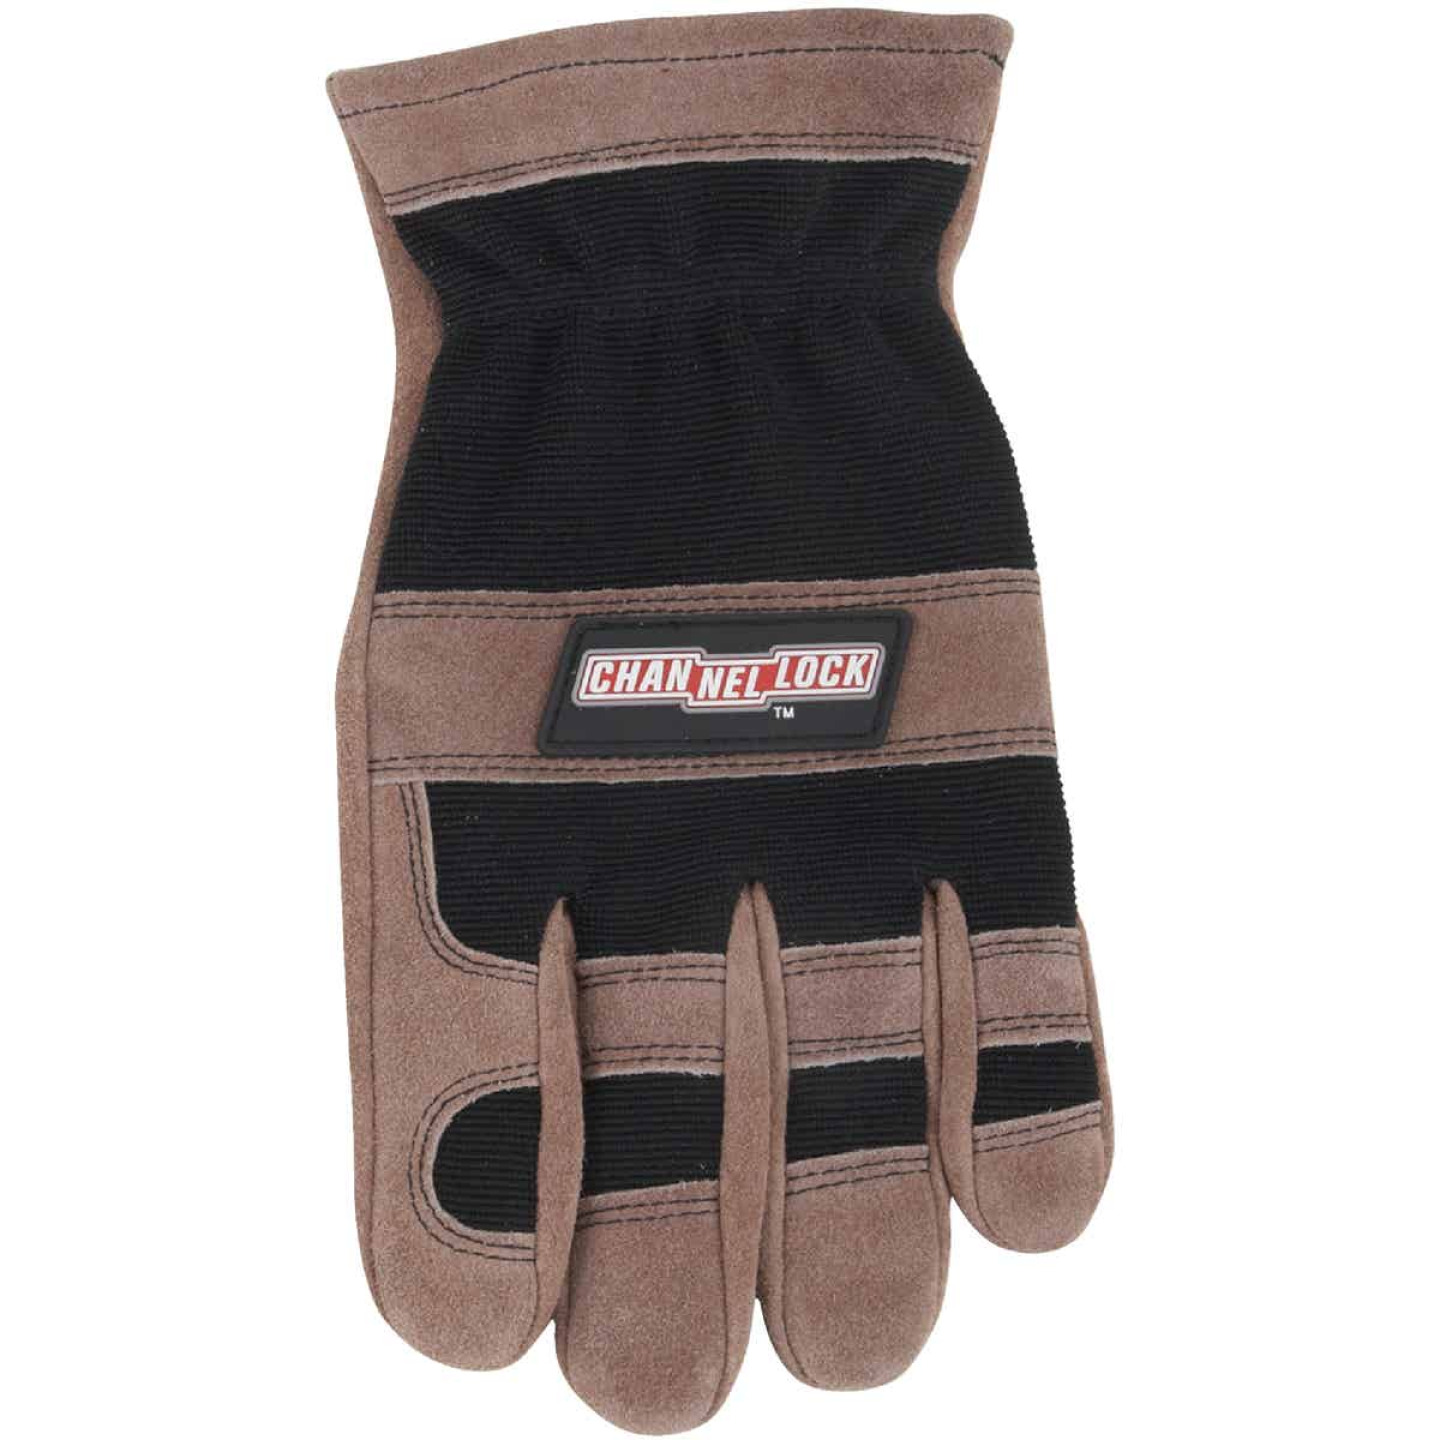 Channellock Men's Large Leather Work Glove Image 6